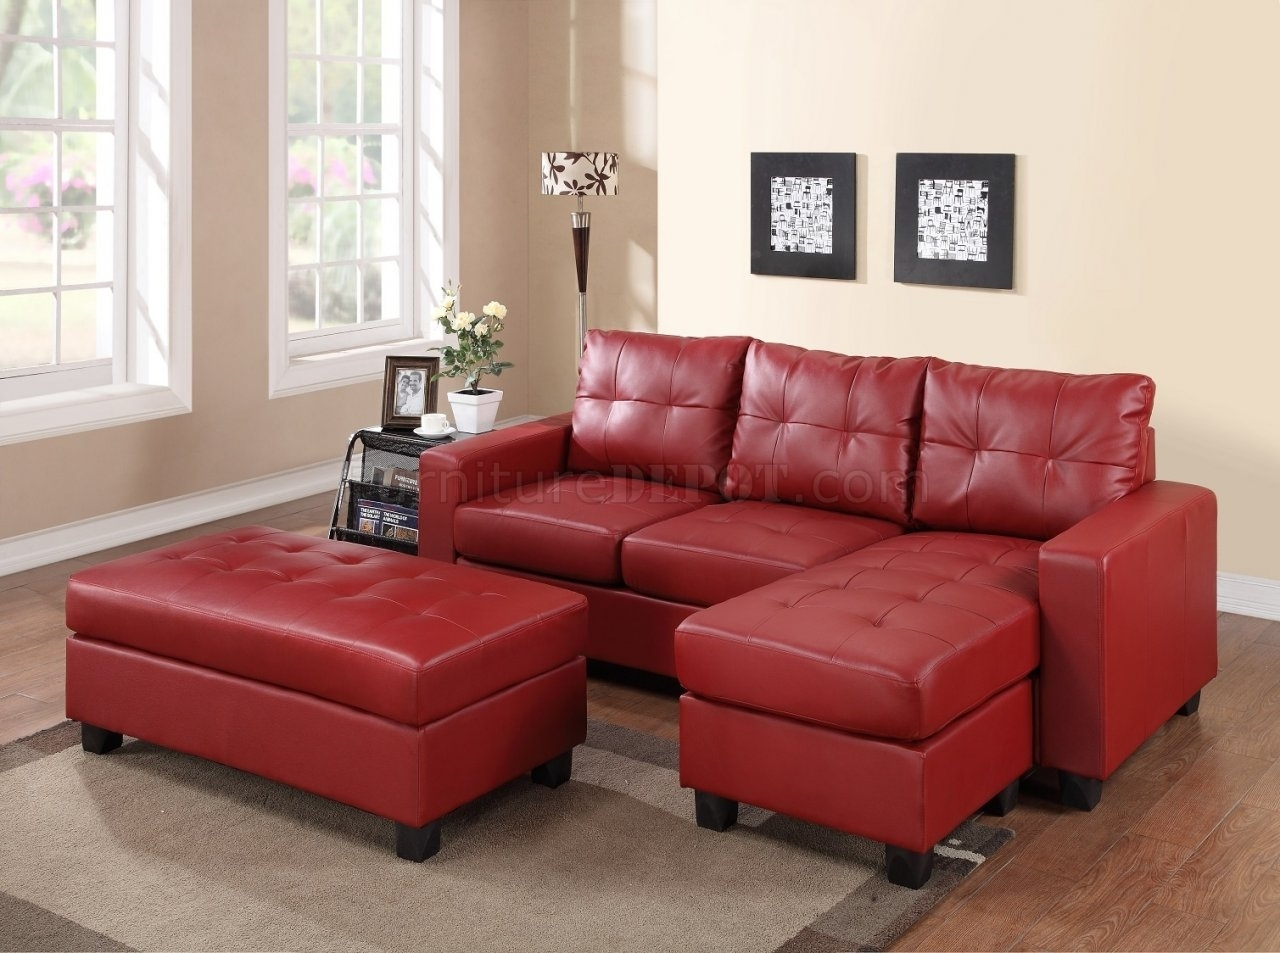 2511 Sectional Sofa Set In Red Bonded Leather Match Pu With Regard To Red Sectional Sofas (Image 3 of 10)